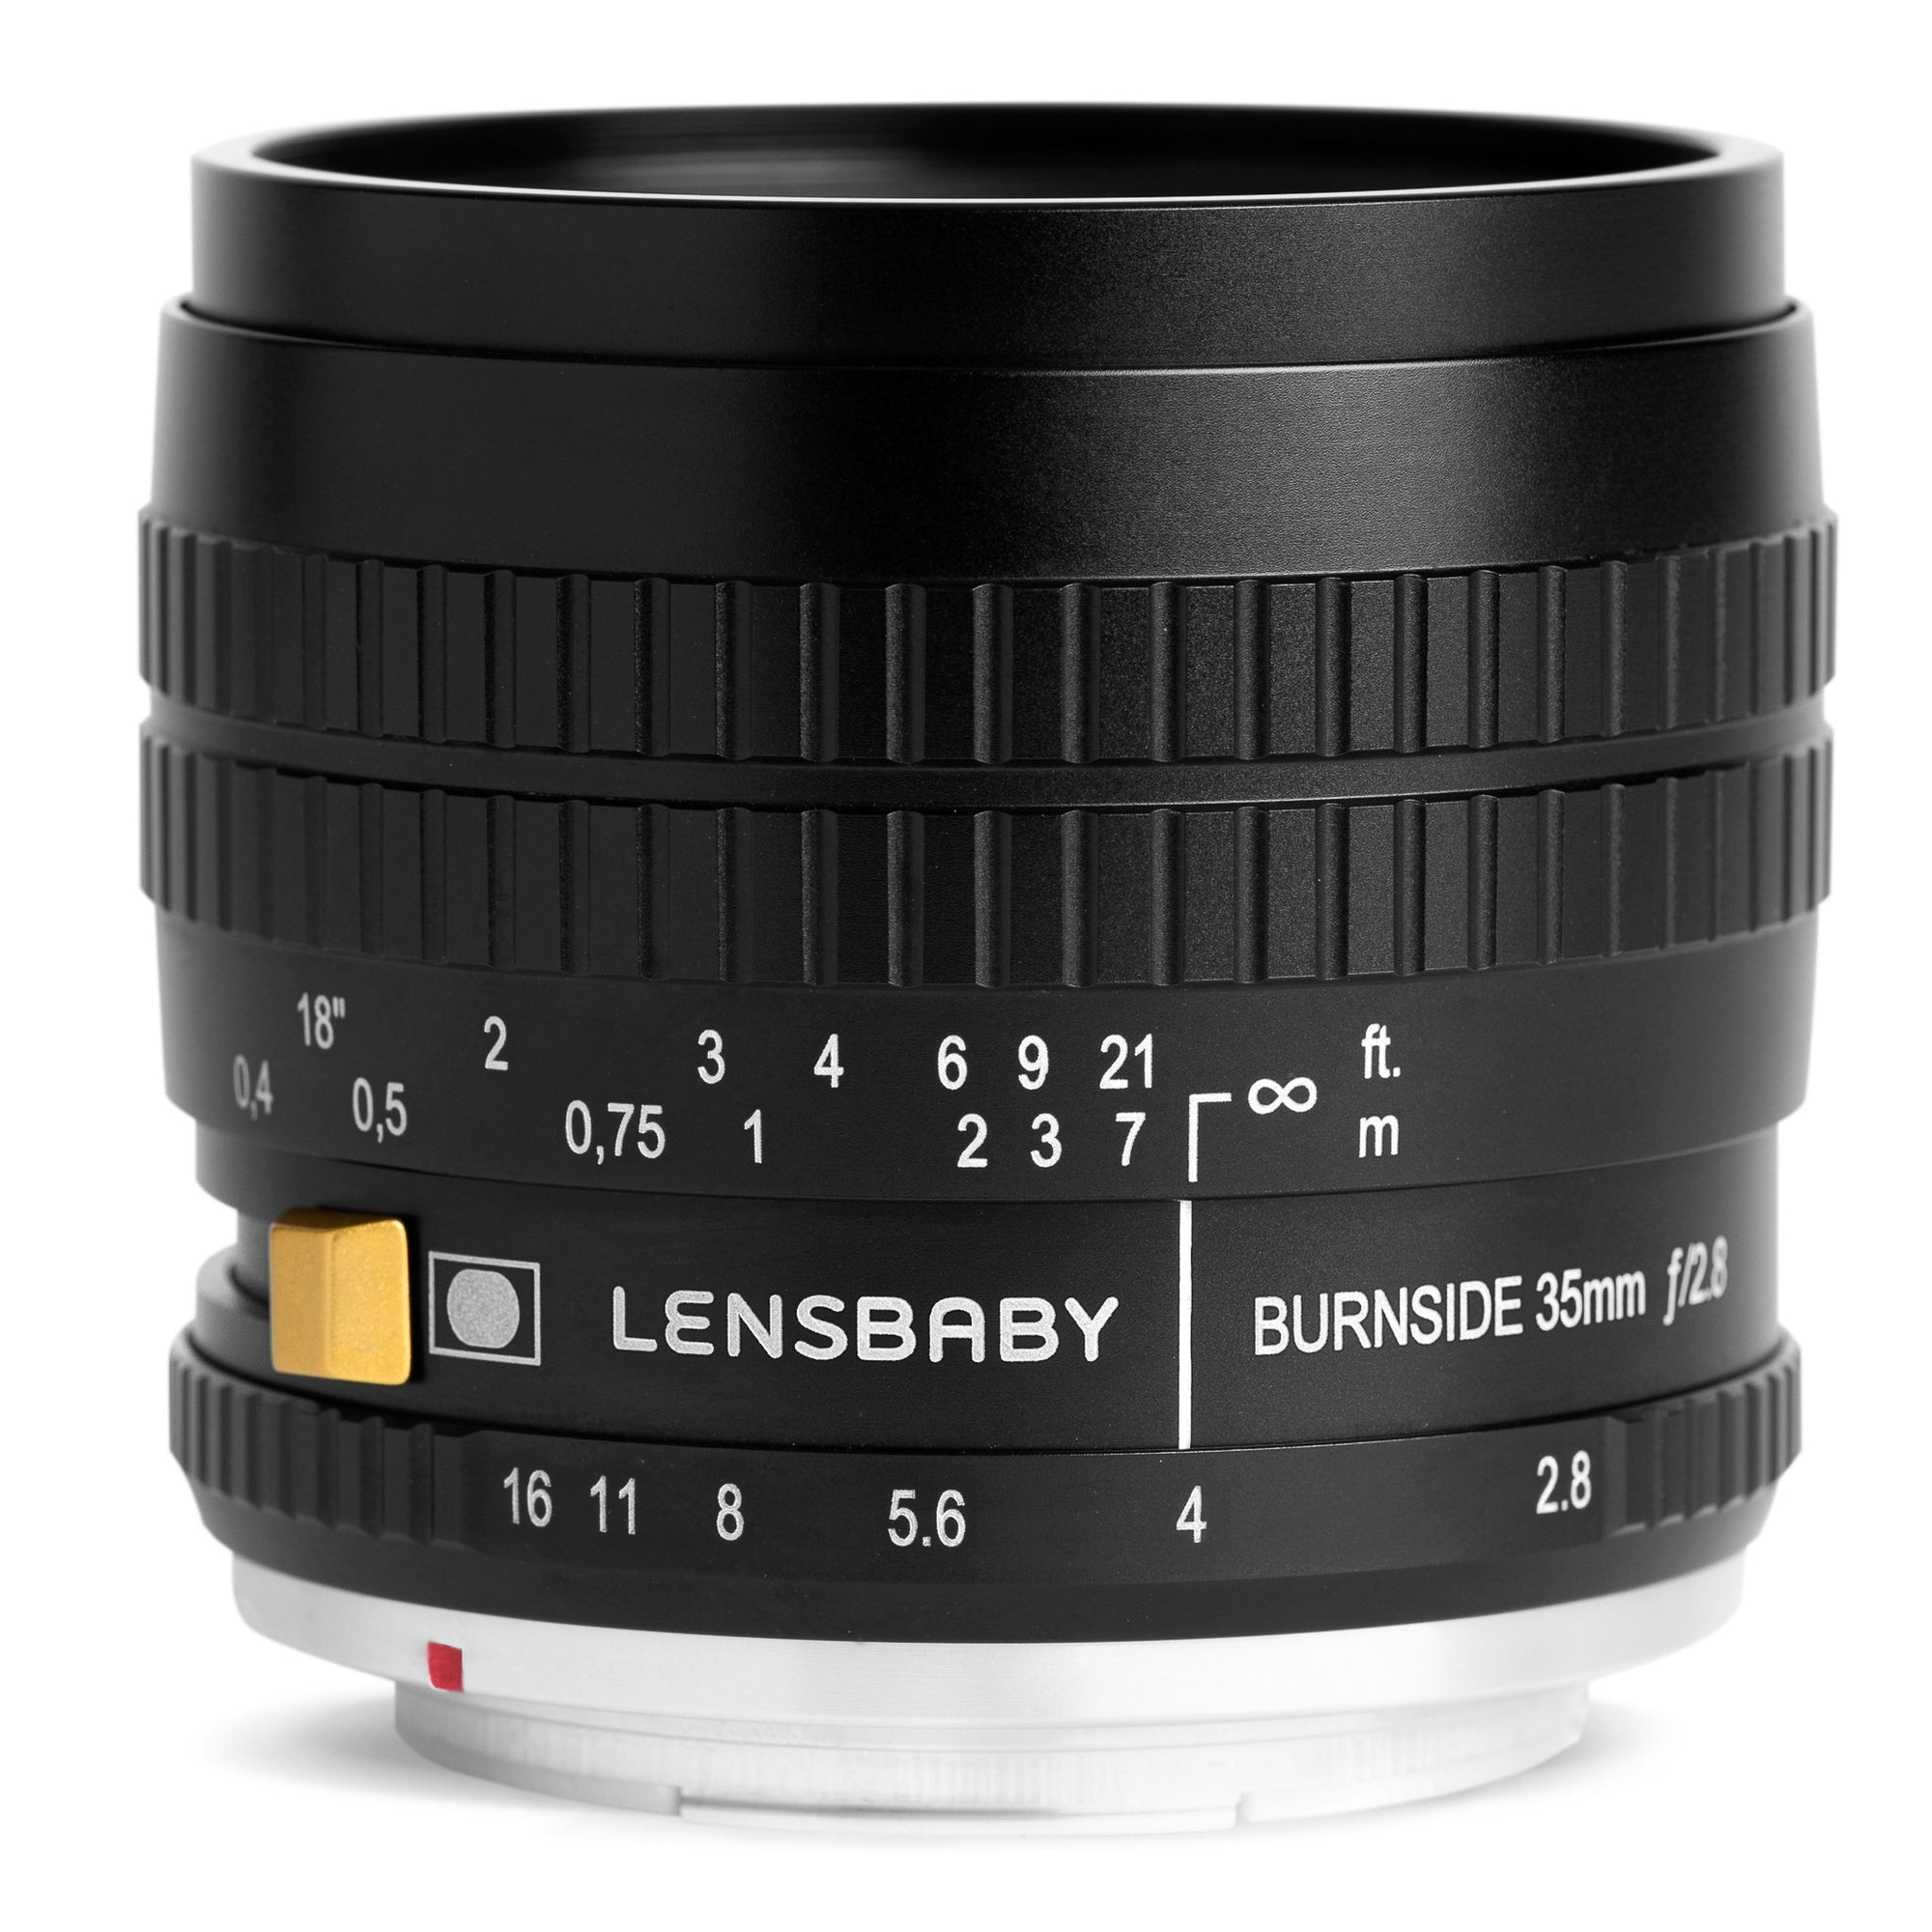 Refurbished Burnside 35 - Lensbaby Creative Effect Camera Lenses